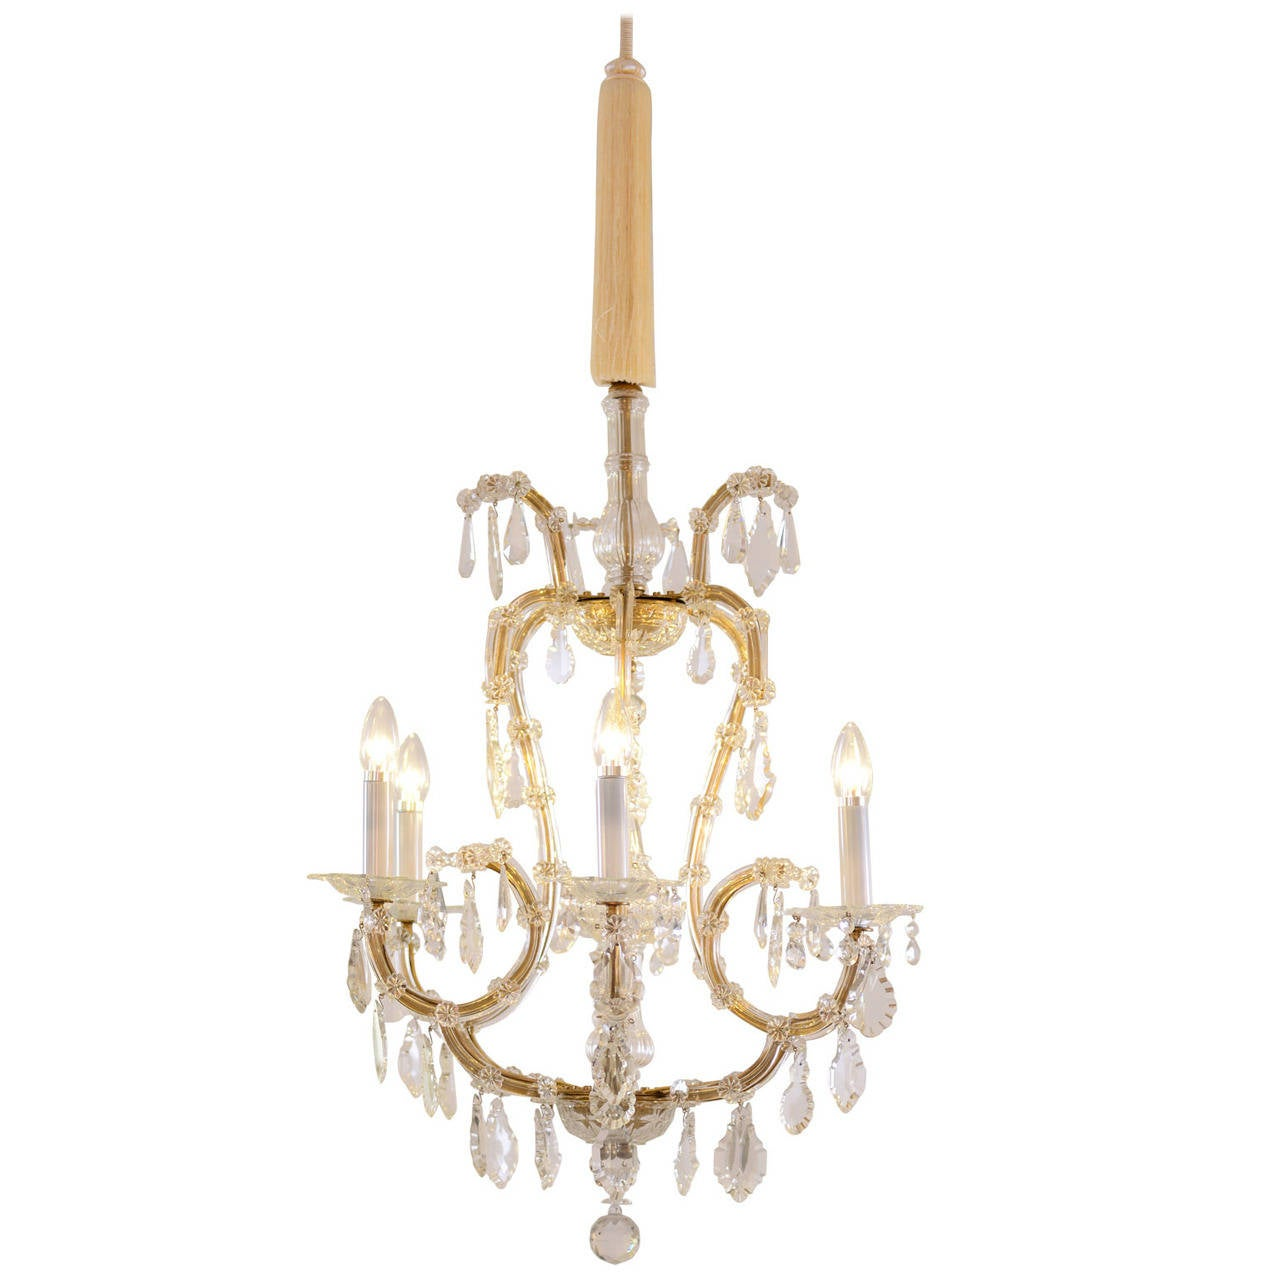 Maria Theresa Baroque Chandelier